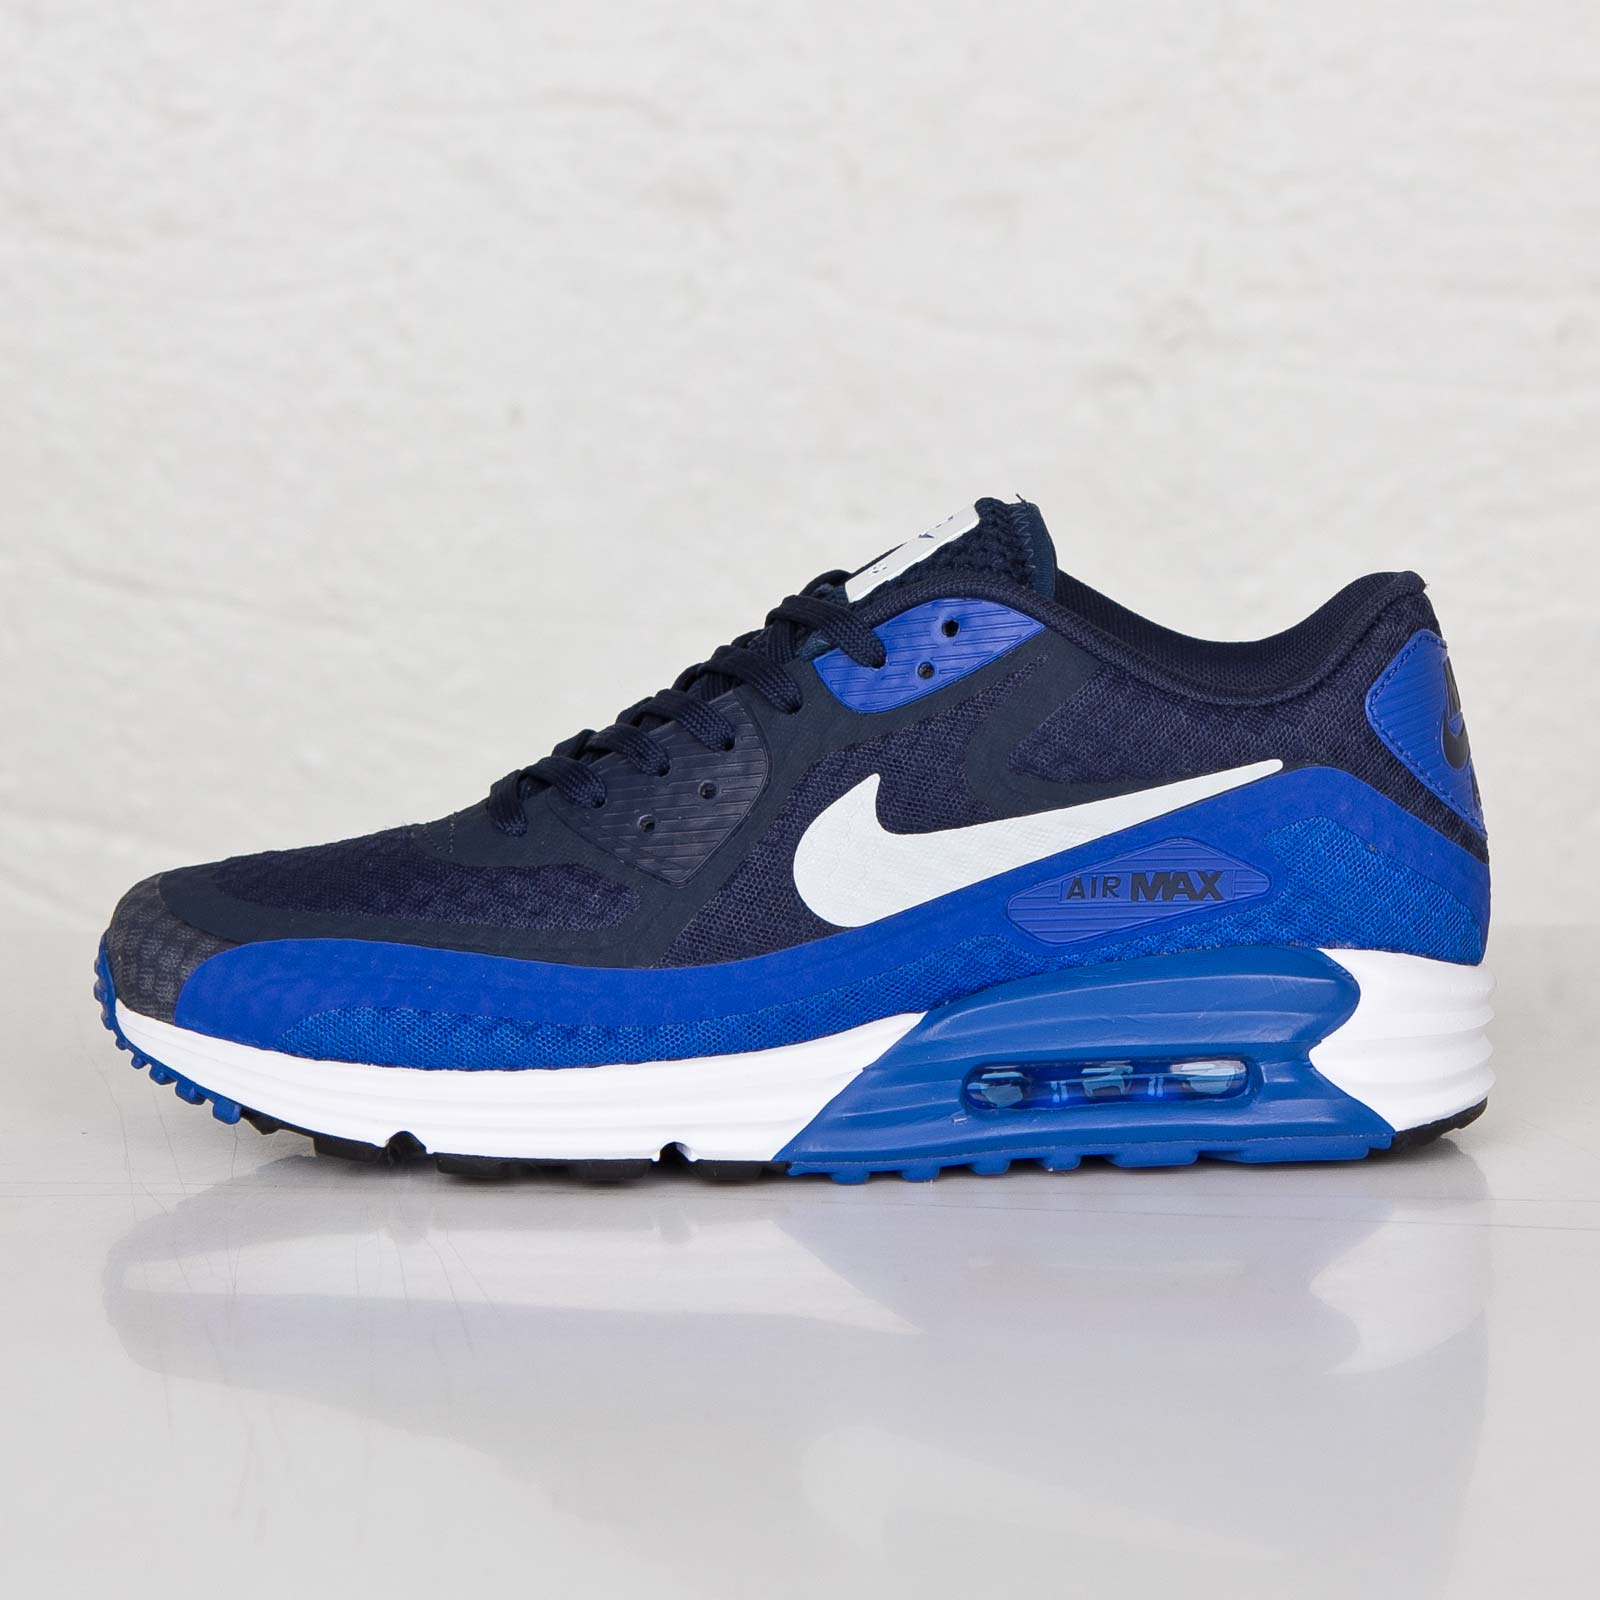 huge selection of 3aecc 6aa81 Nike Air Max Lunar90 Breeze - 724078-400 - Sneakersnstuff | sneakers ...